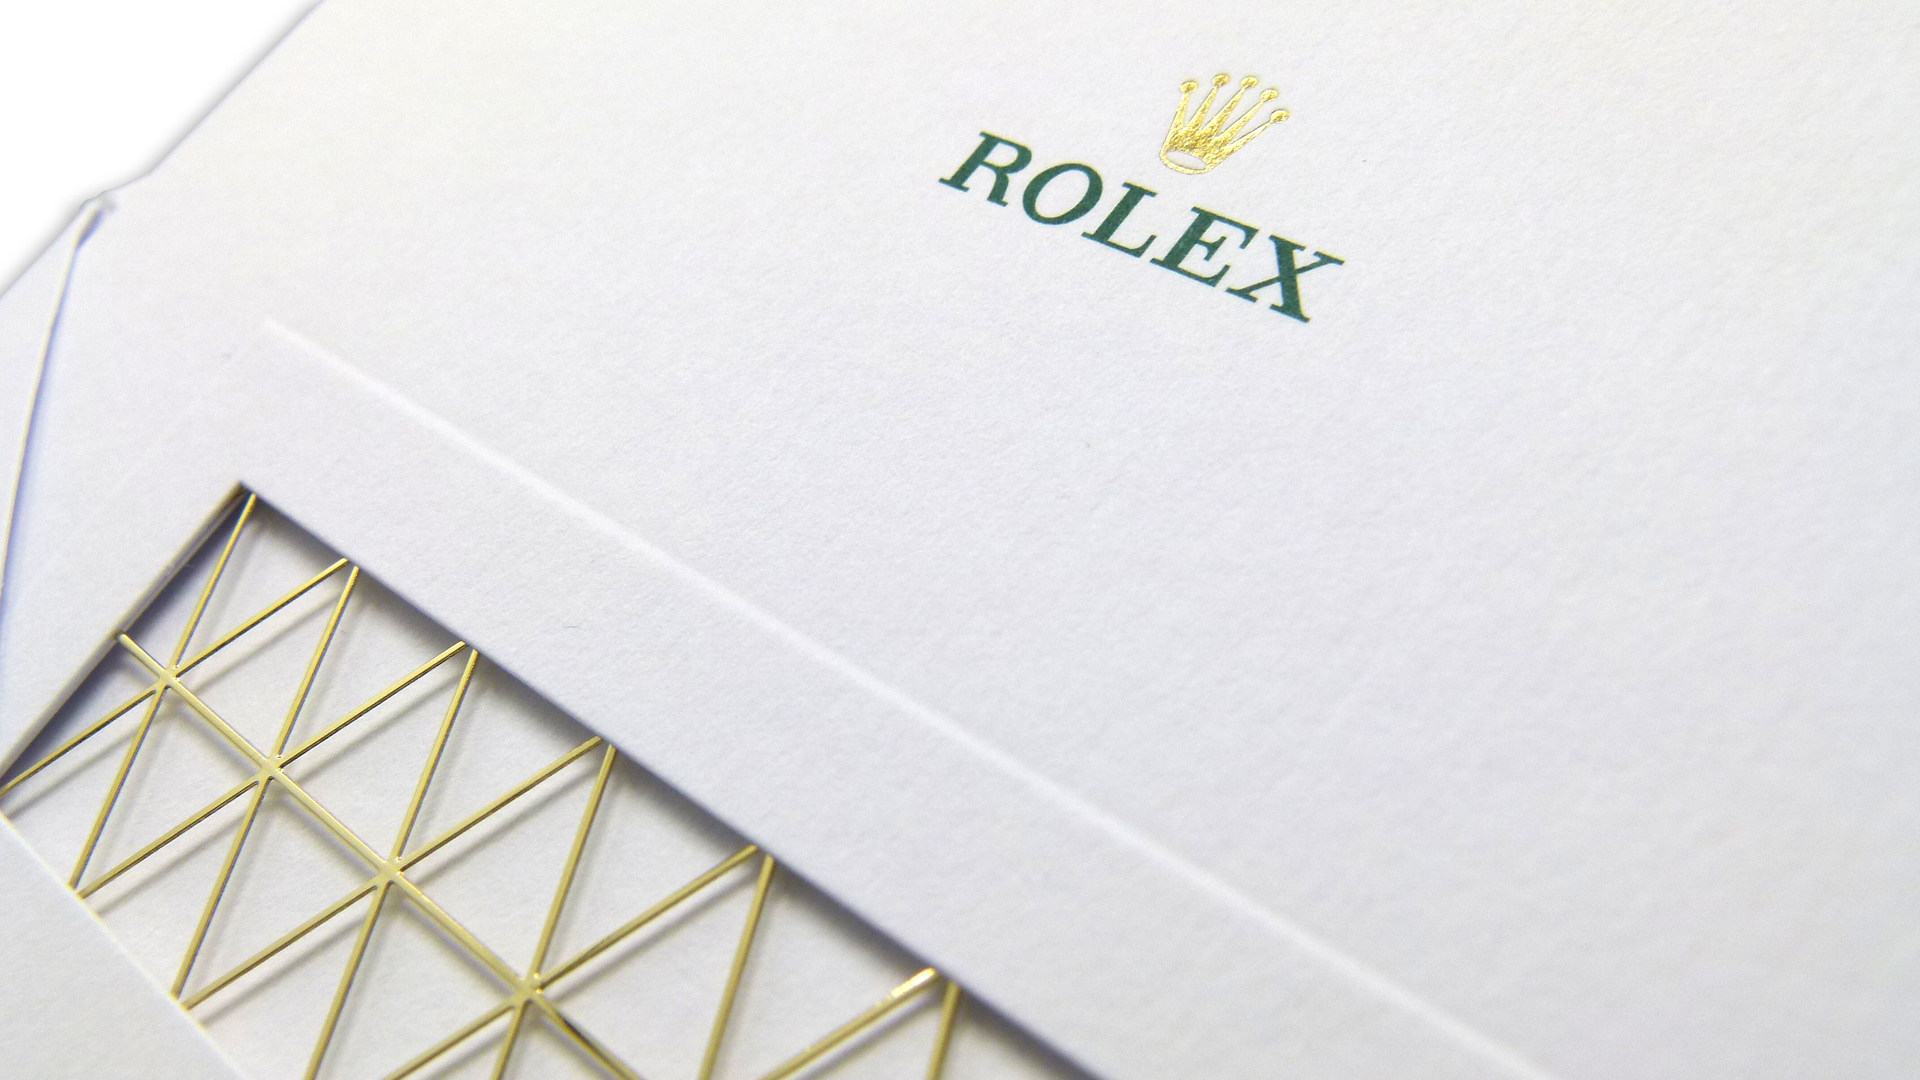 Oscar-Worthy Rolex Academy Awards Invitation - PaperSpecs